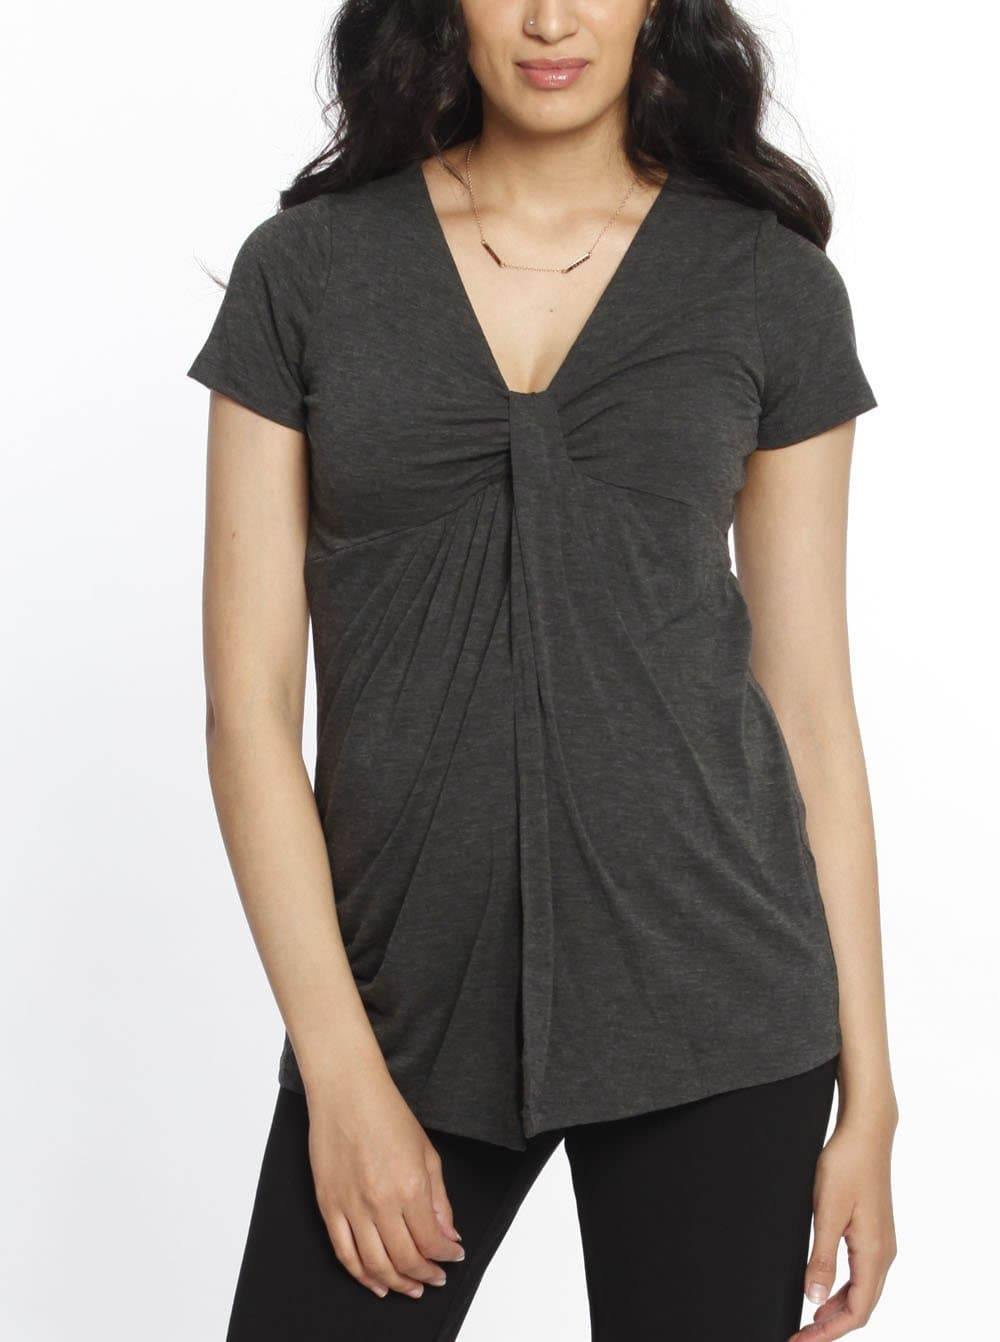 Knot Front Nursing Top - Marl Grey maternity online store